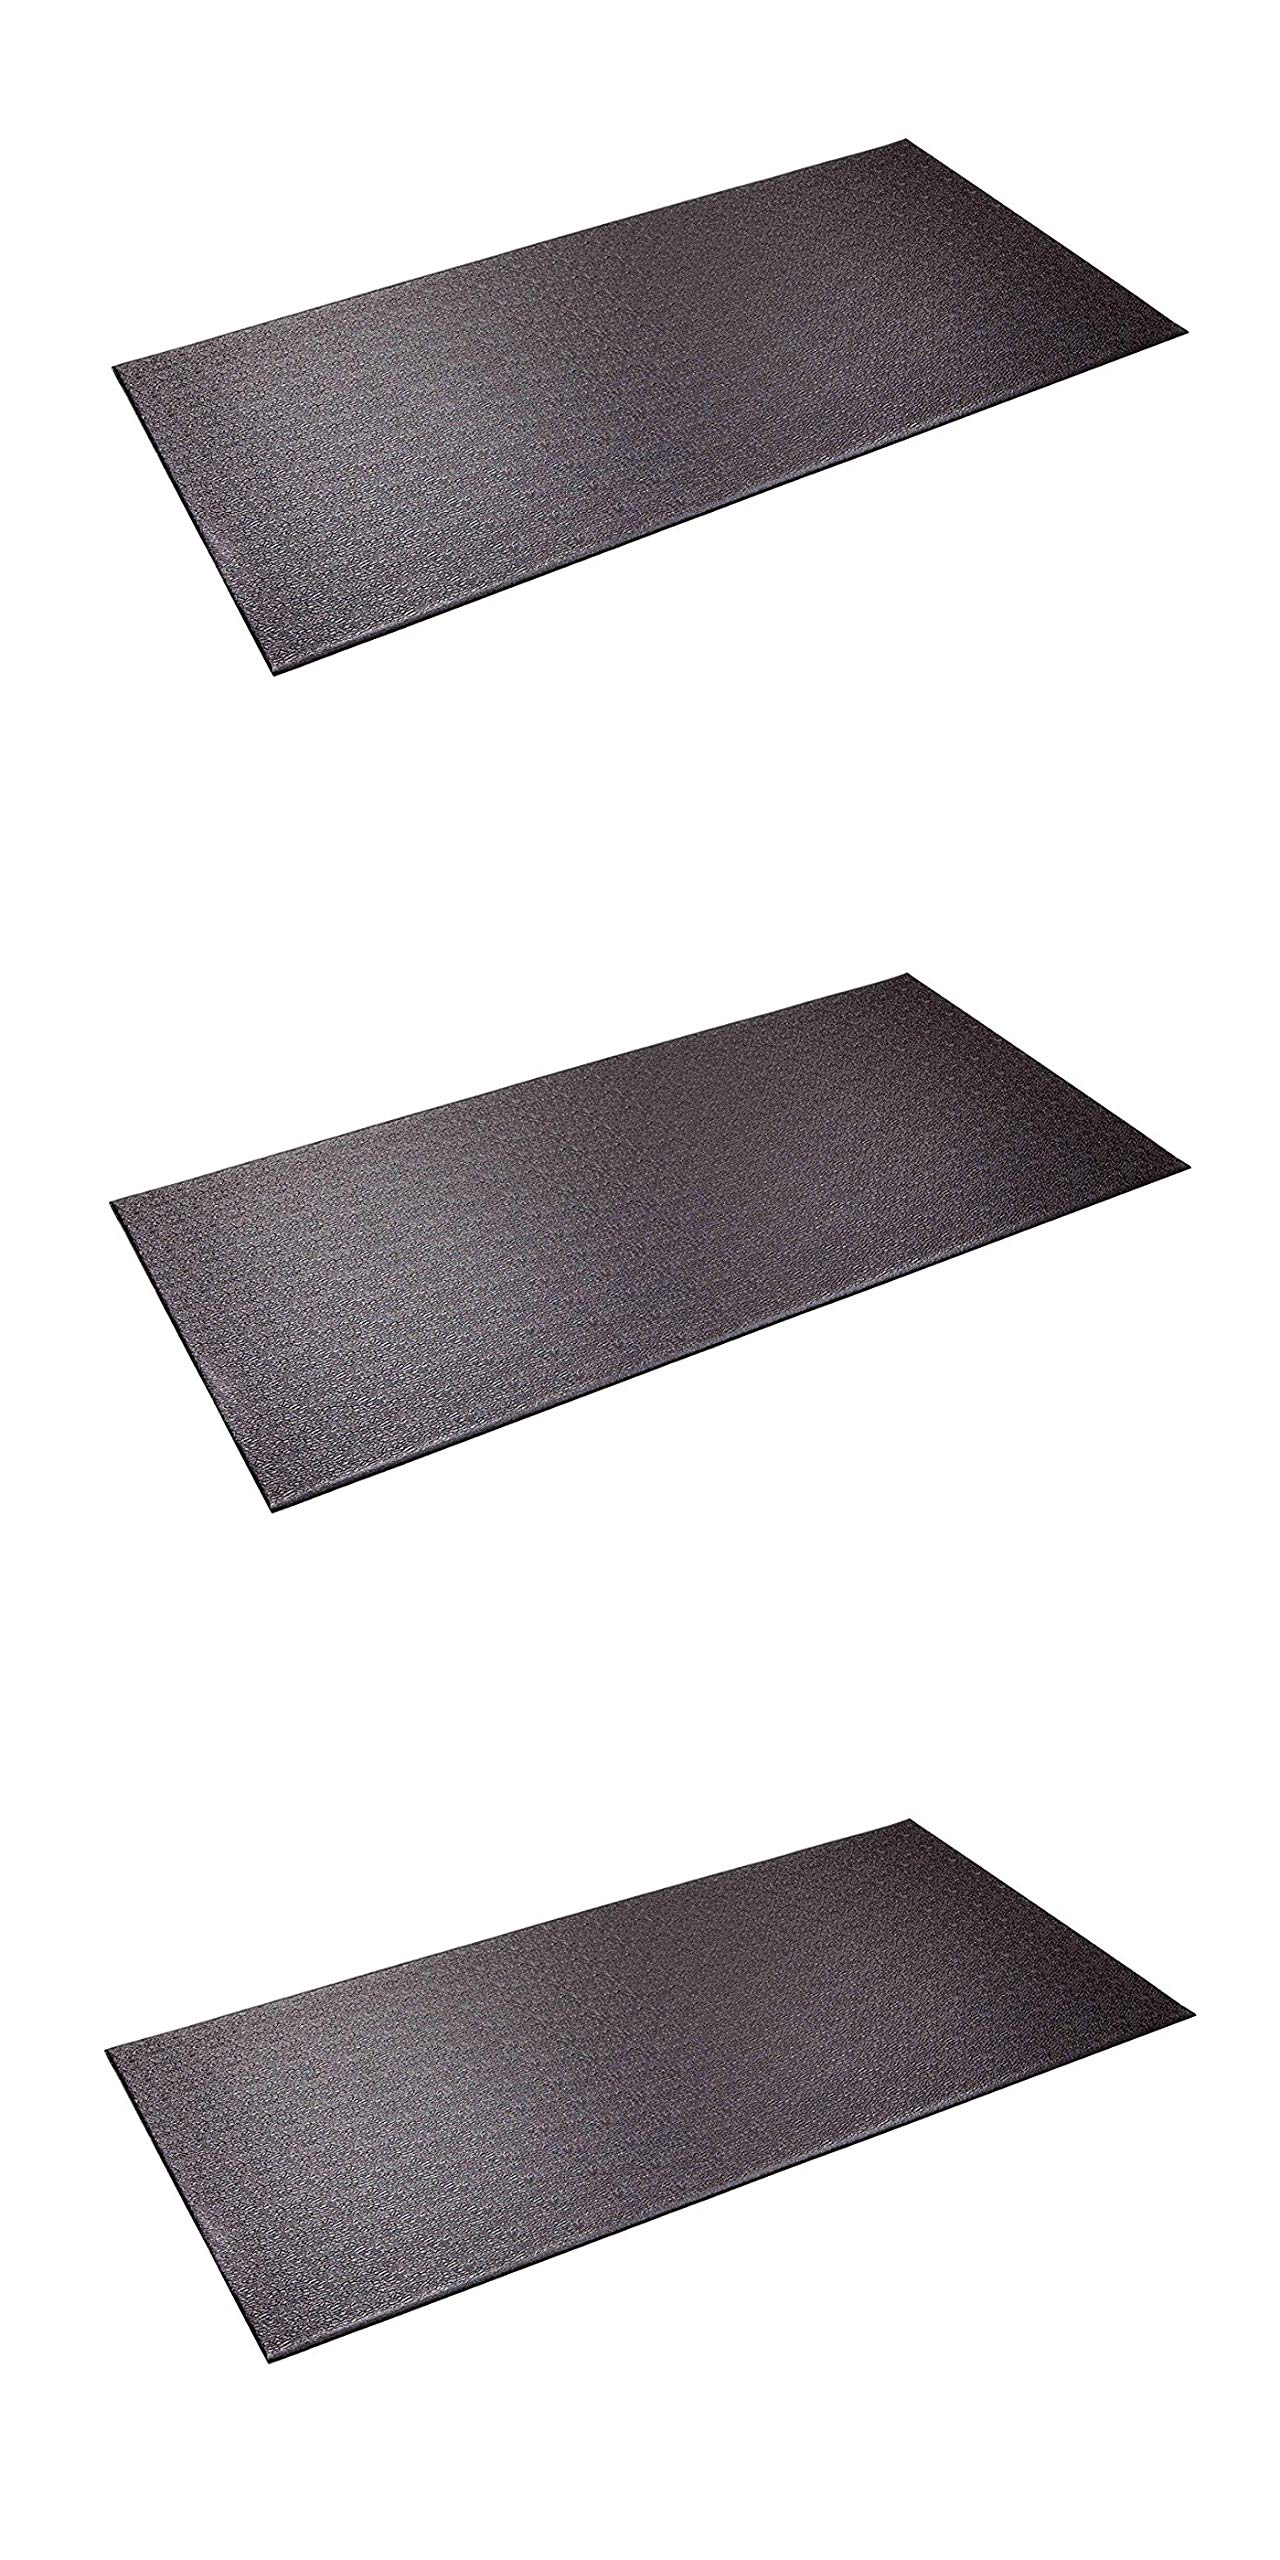 SuperMats Heavy Duty Equipment Mat 13GS Made in U.S.A. for Indoor Cycles Recumbent Bikes Upright Exercise Bikes and Steppers (2.5 Feet x 5 Feet) (30-Inch x 60-Inch) (Тhrее Расk)